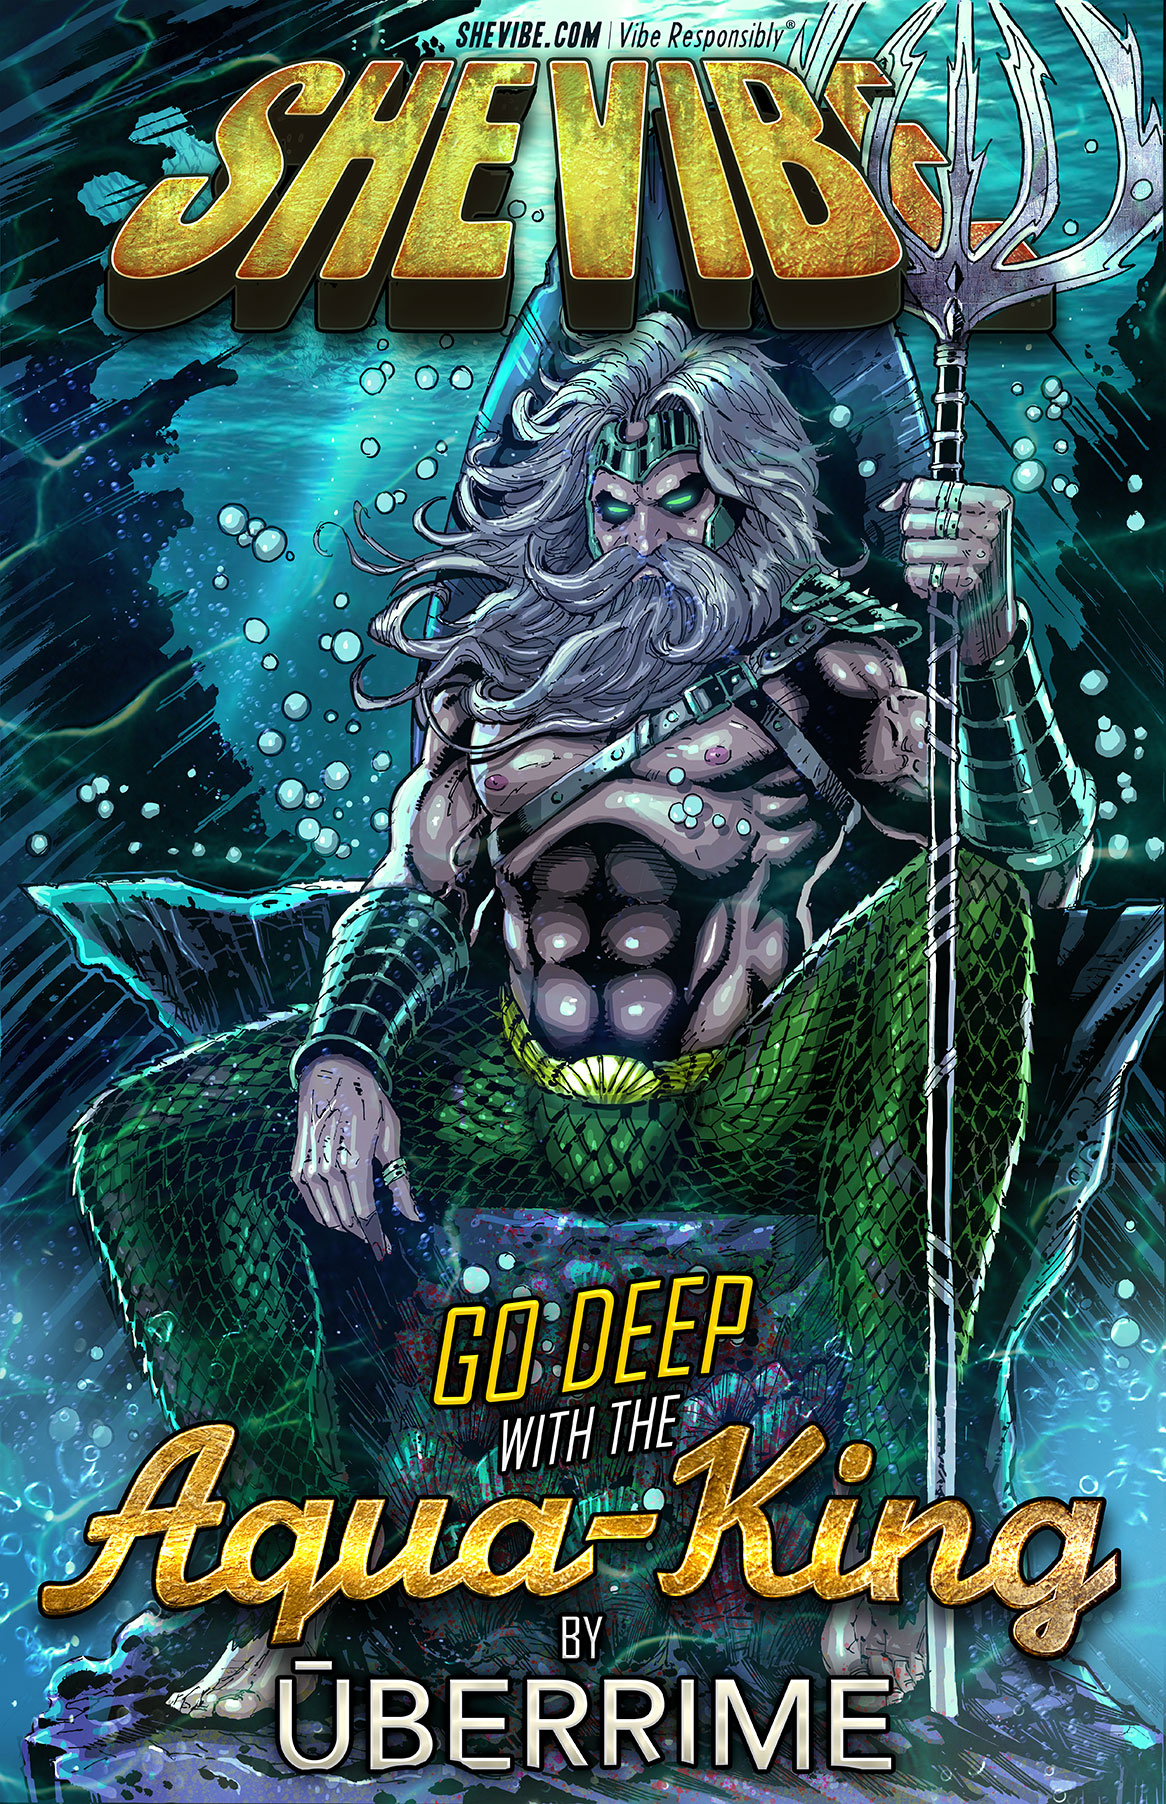 A SheVibe Exclusive! Go Deep With The Aqua-King By Uberrime